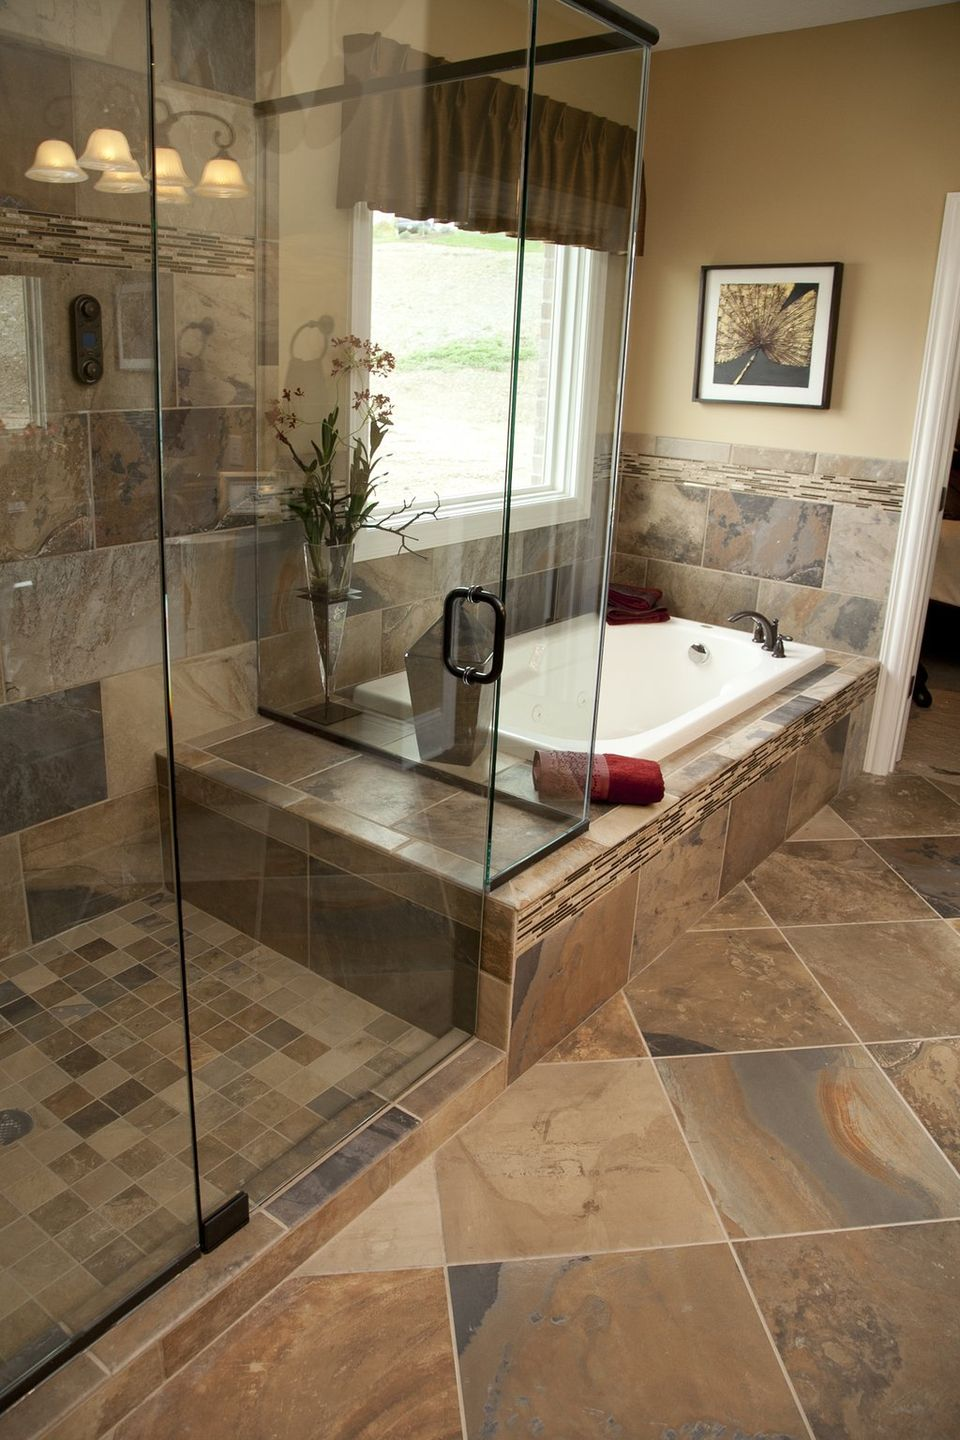 33 stunning pictures and ideas of natural stone bathroom Bathroom wall and floor tiles ideas